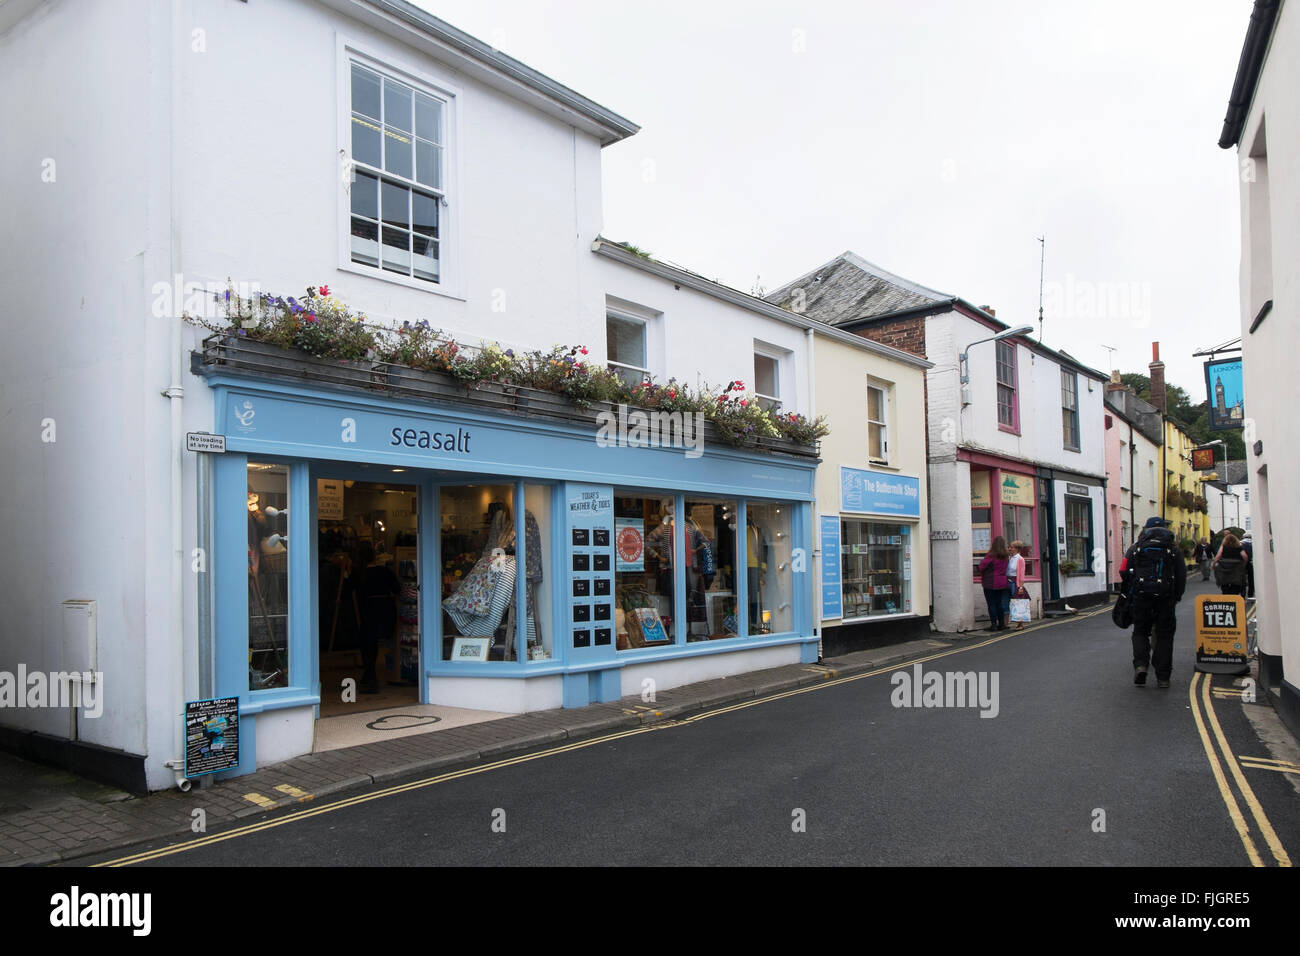 Seasalt clothes shop in Padstow, Cornwall, UK. - Stock Image